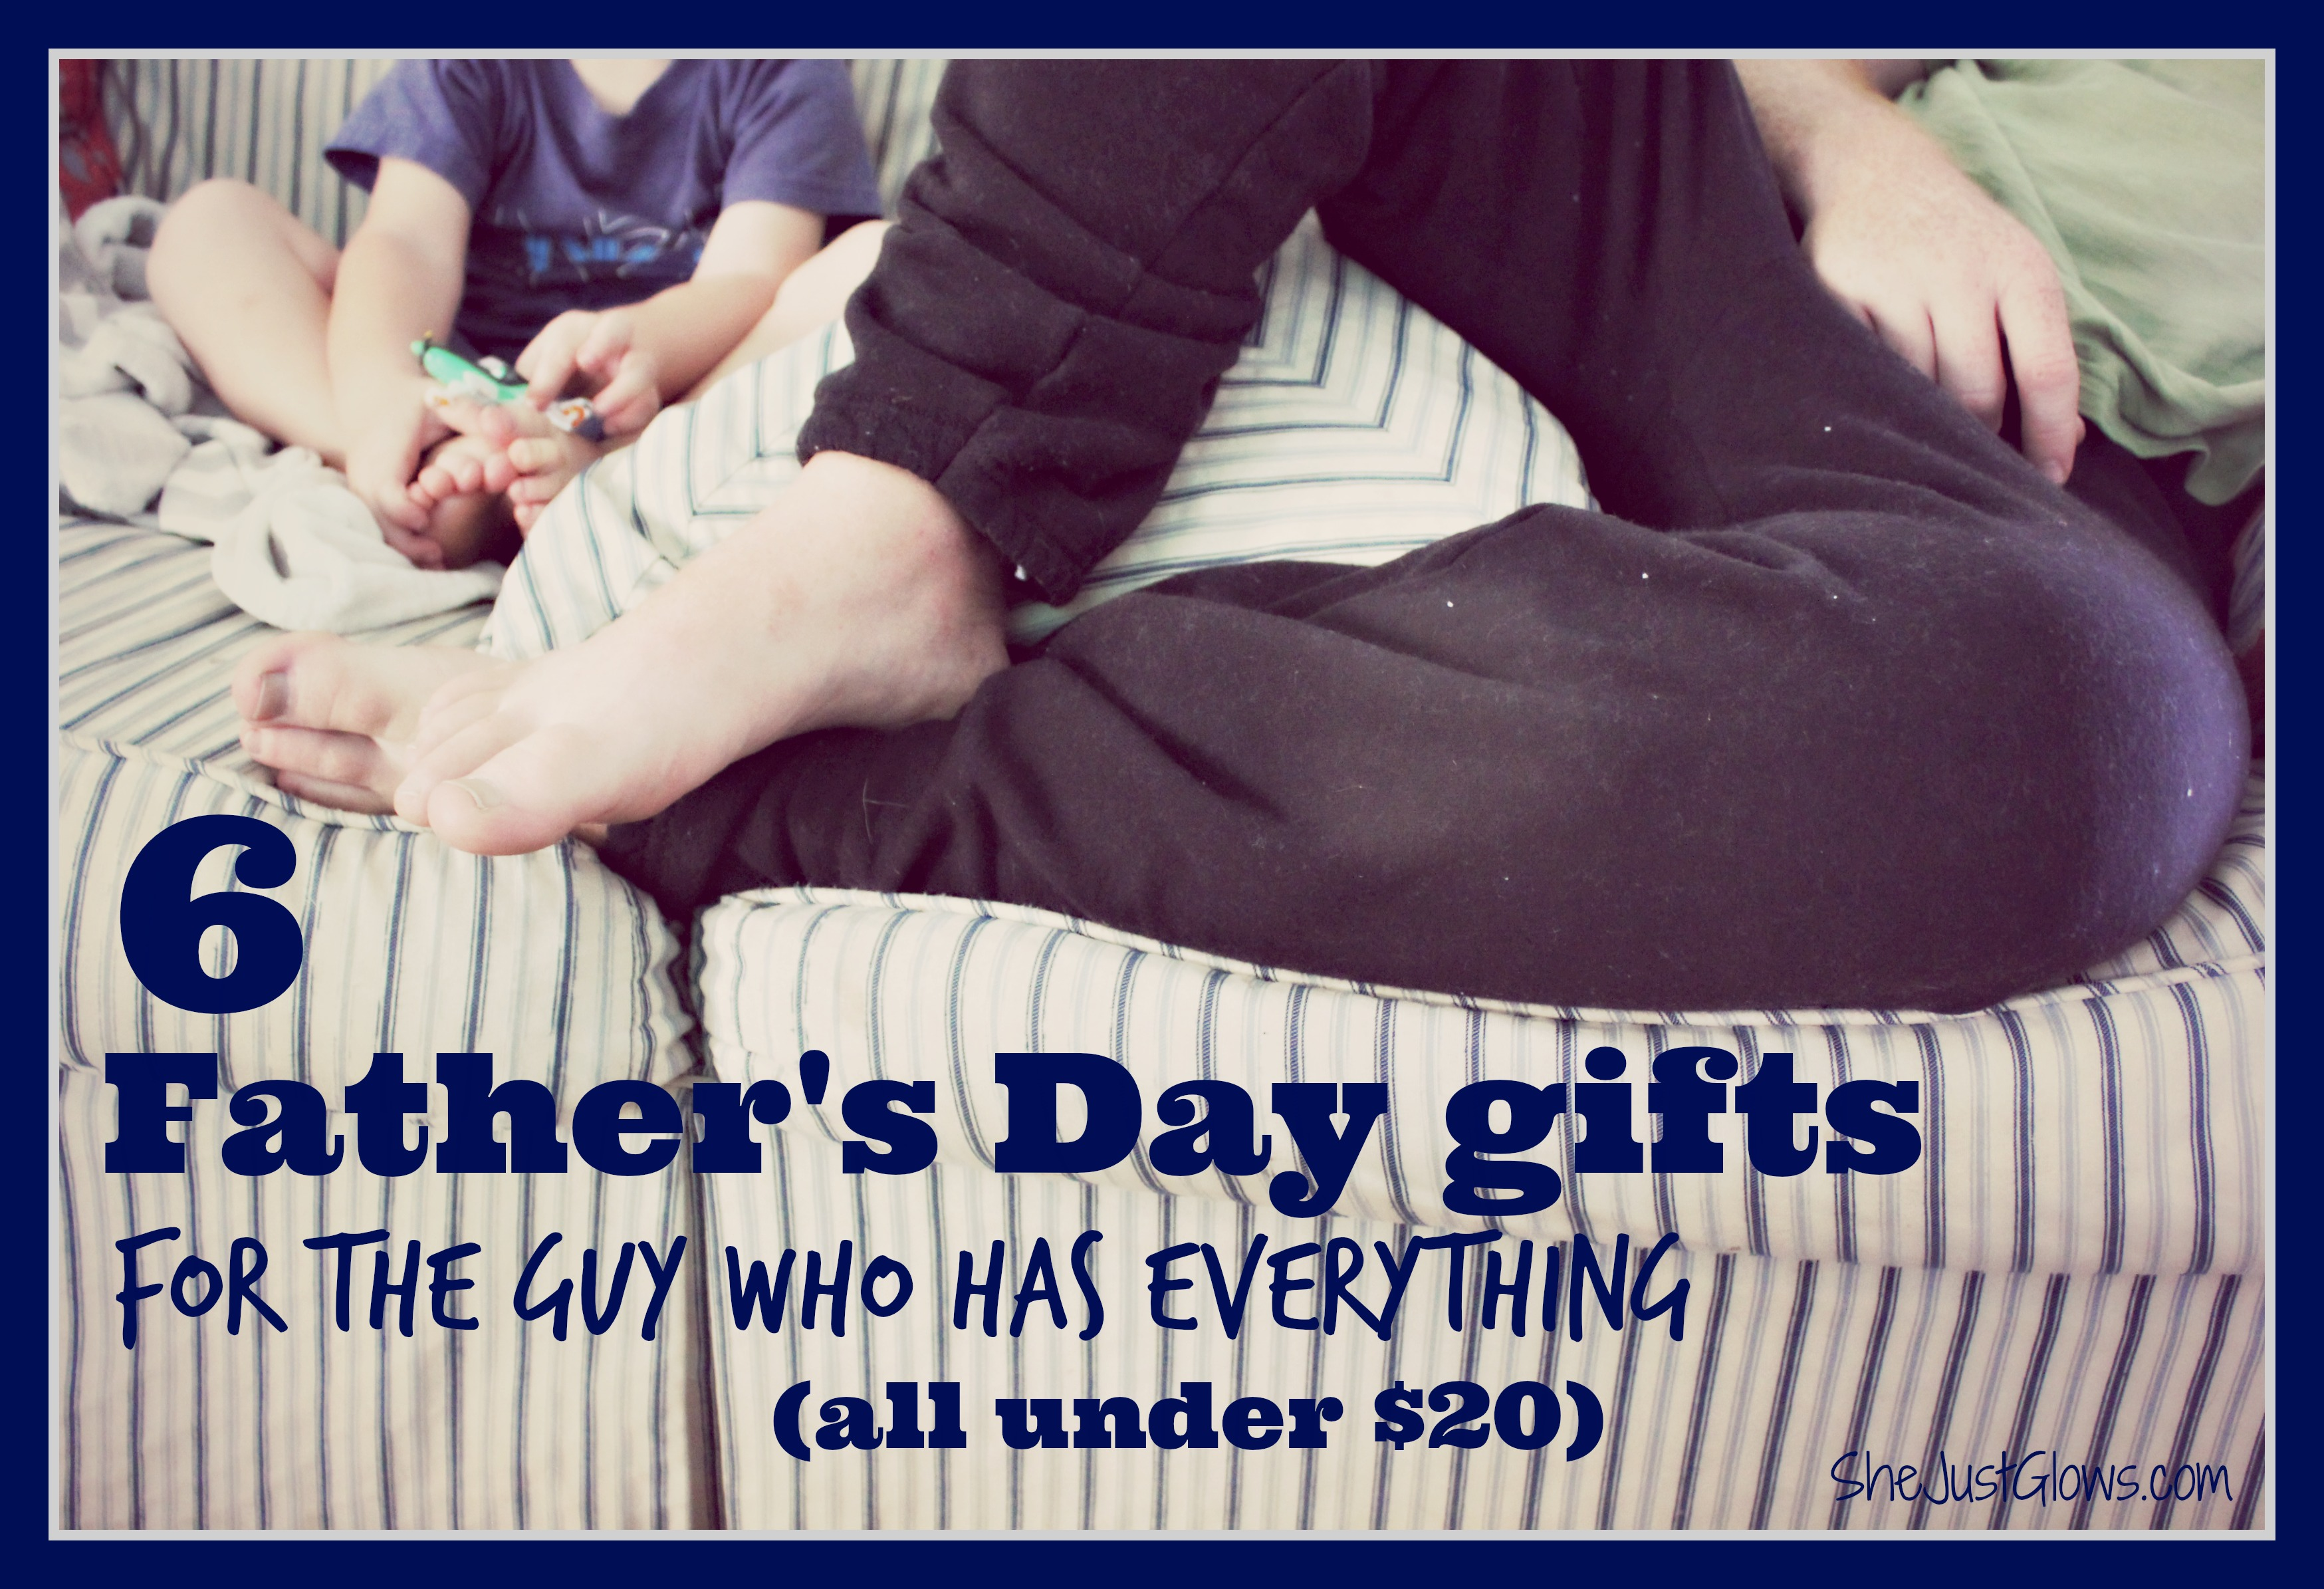 6 Father's Day Gifts for the Guy Who Has Everything (All Under $20) SheJustGlows.com